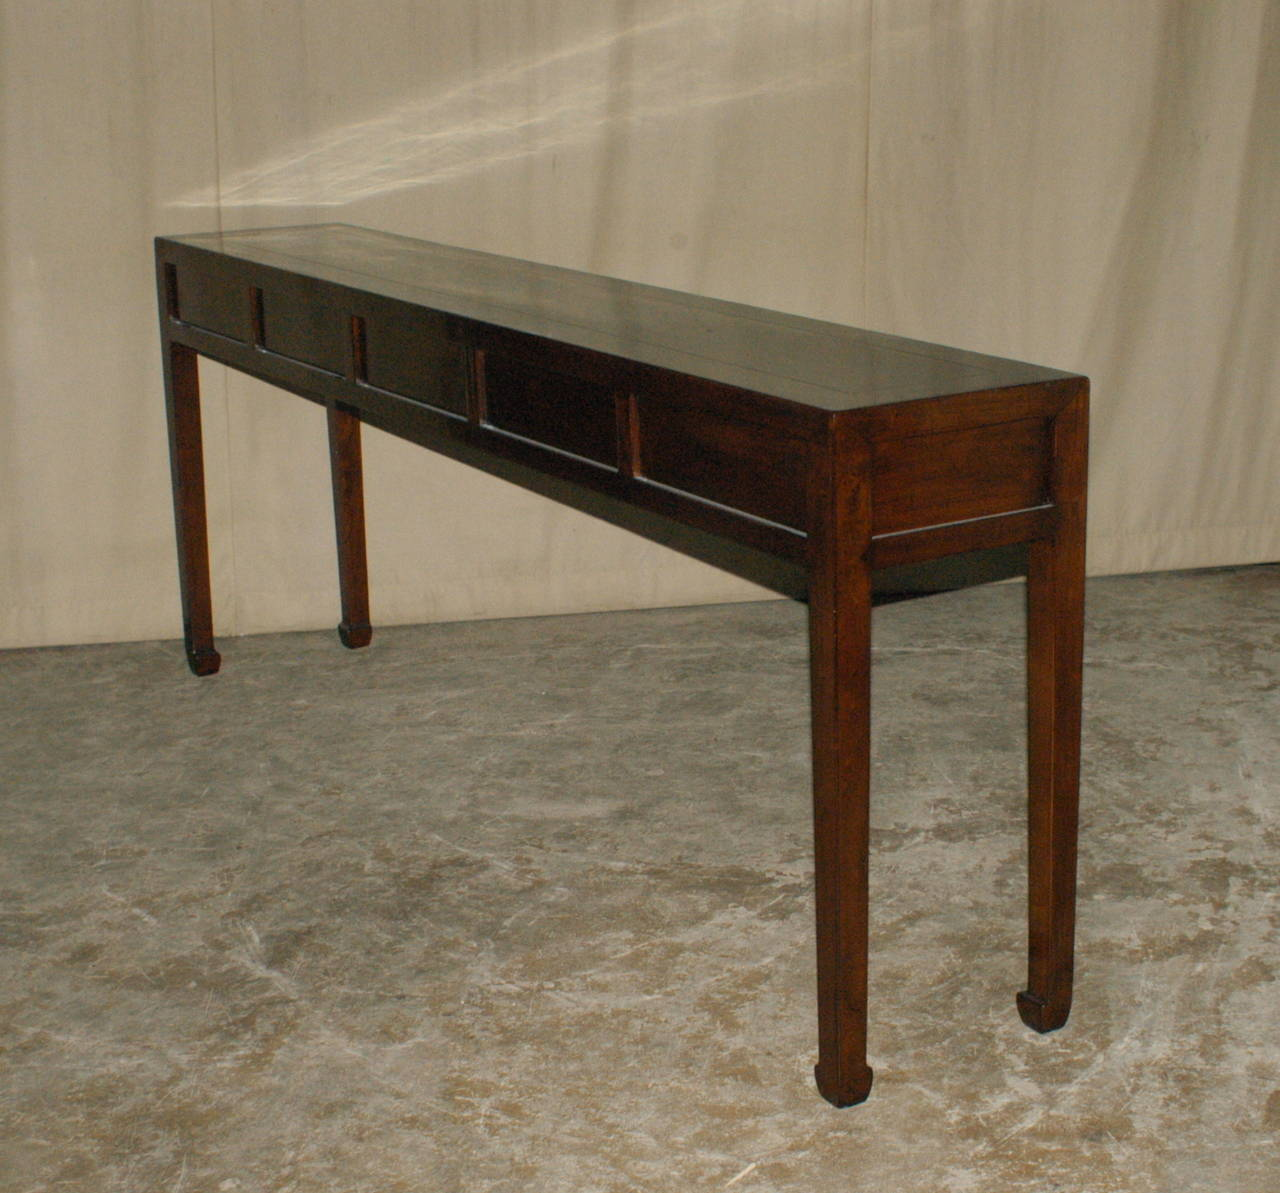 Very Impressive portraiture of Fine Ju Mu Wood Console Table with Drawers at 1stdibs with #332013 color and 1280x1193 pixels